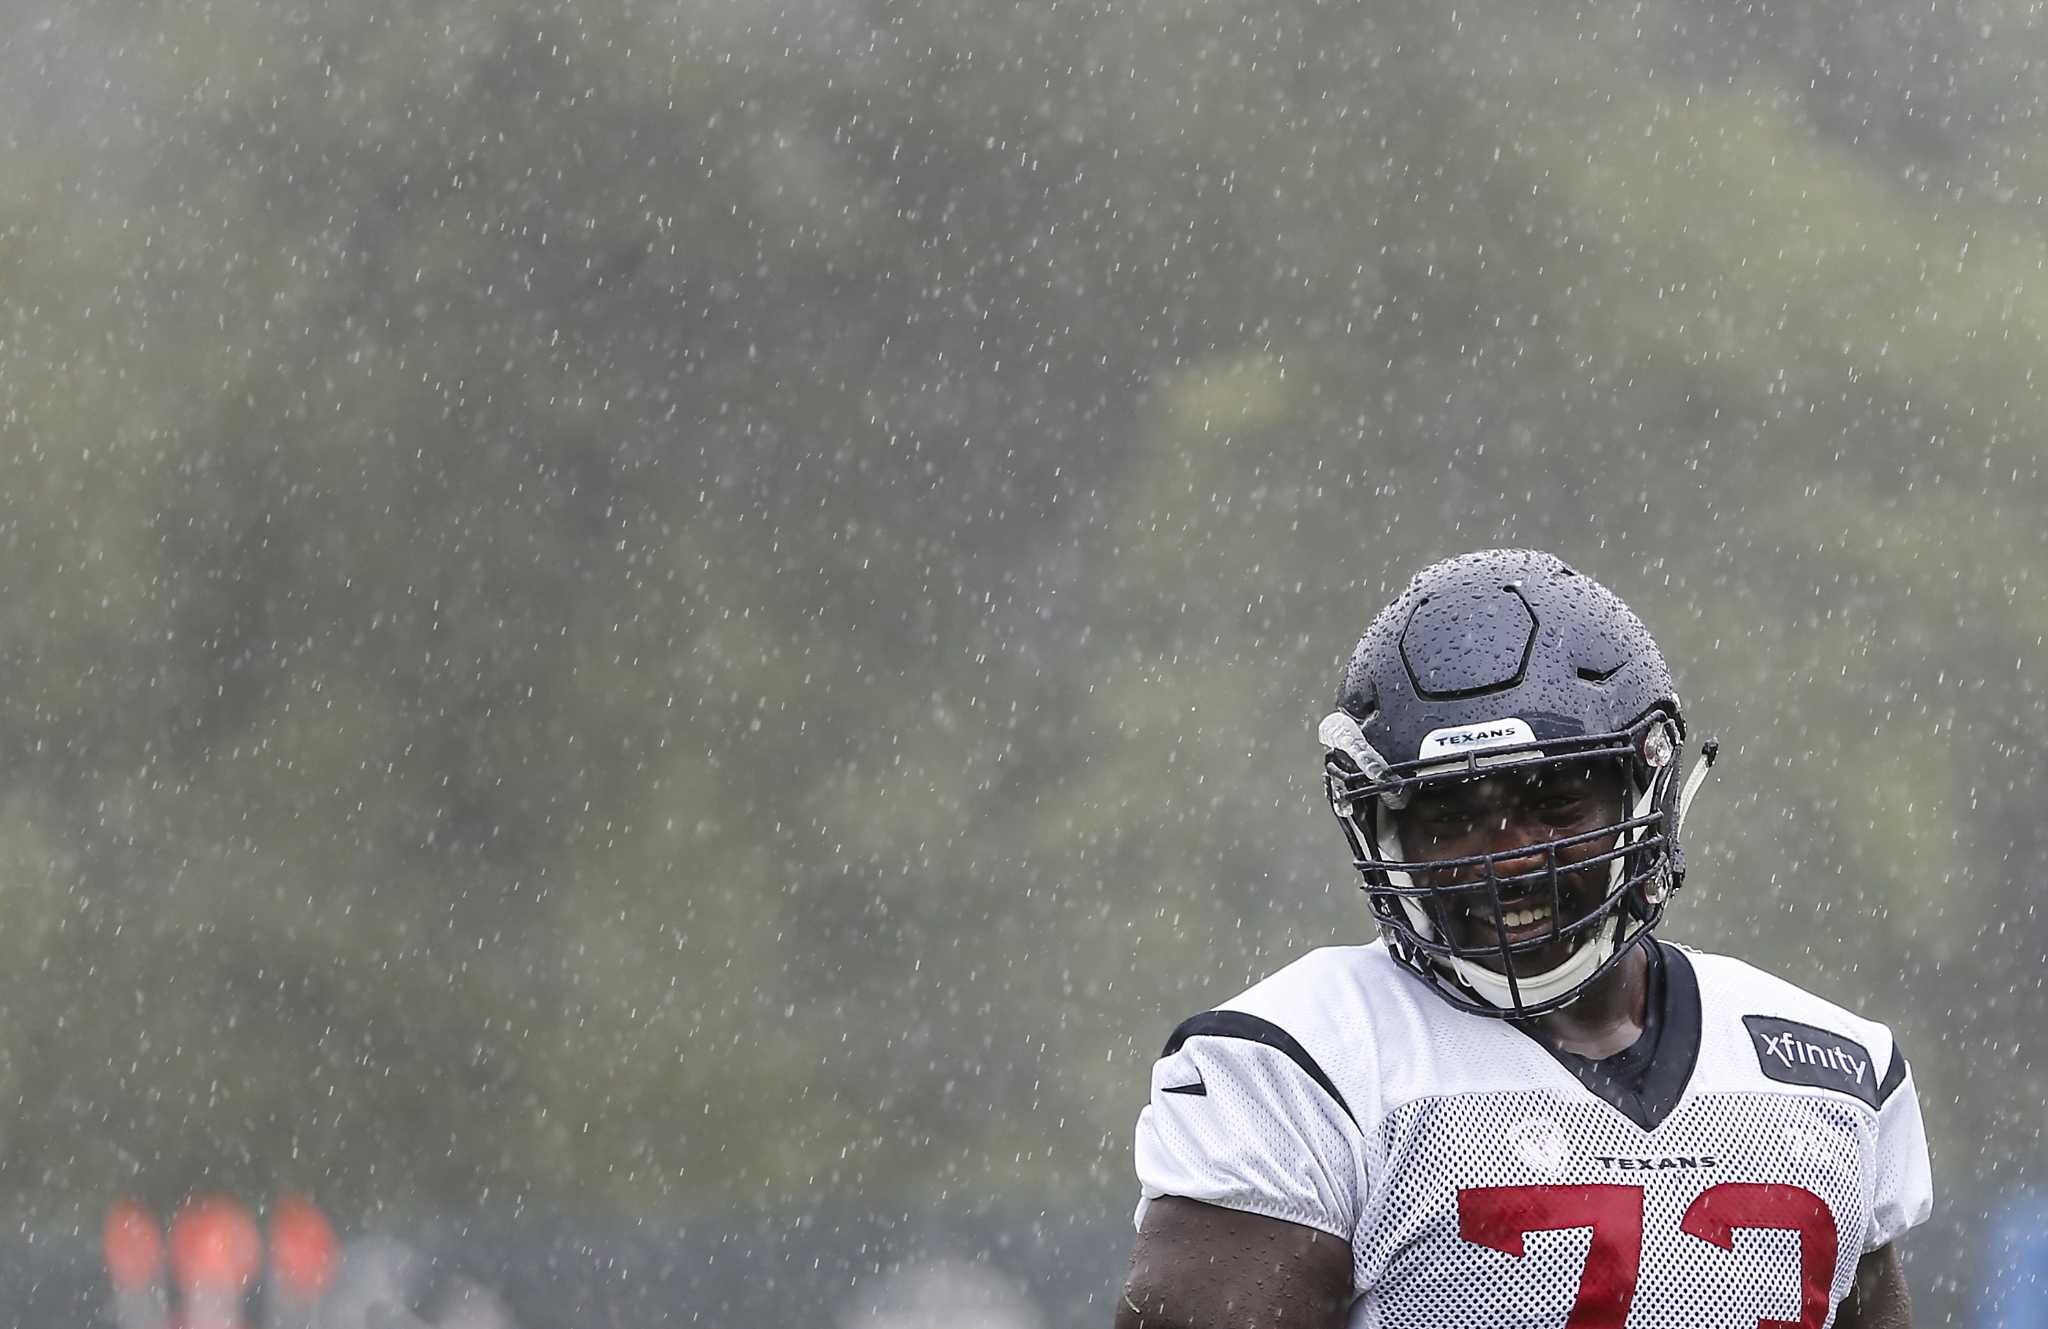 Texans' Zach Fulton remains sidelined, Greg Mancz prepping to start